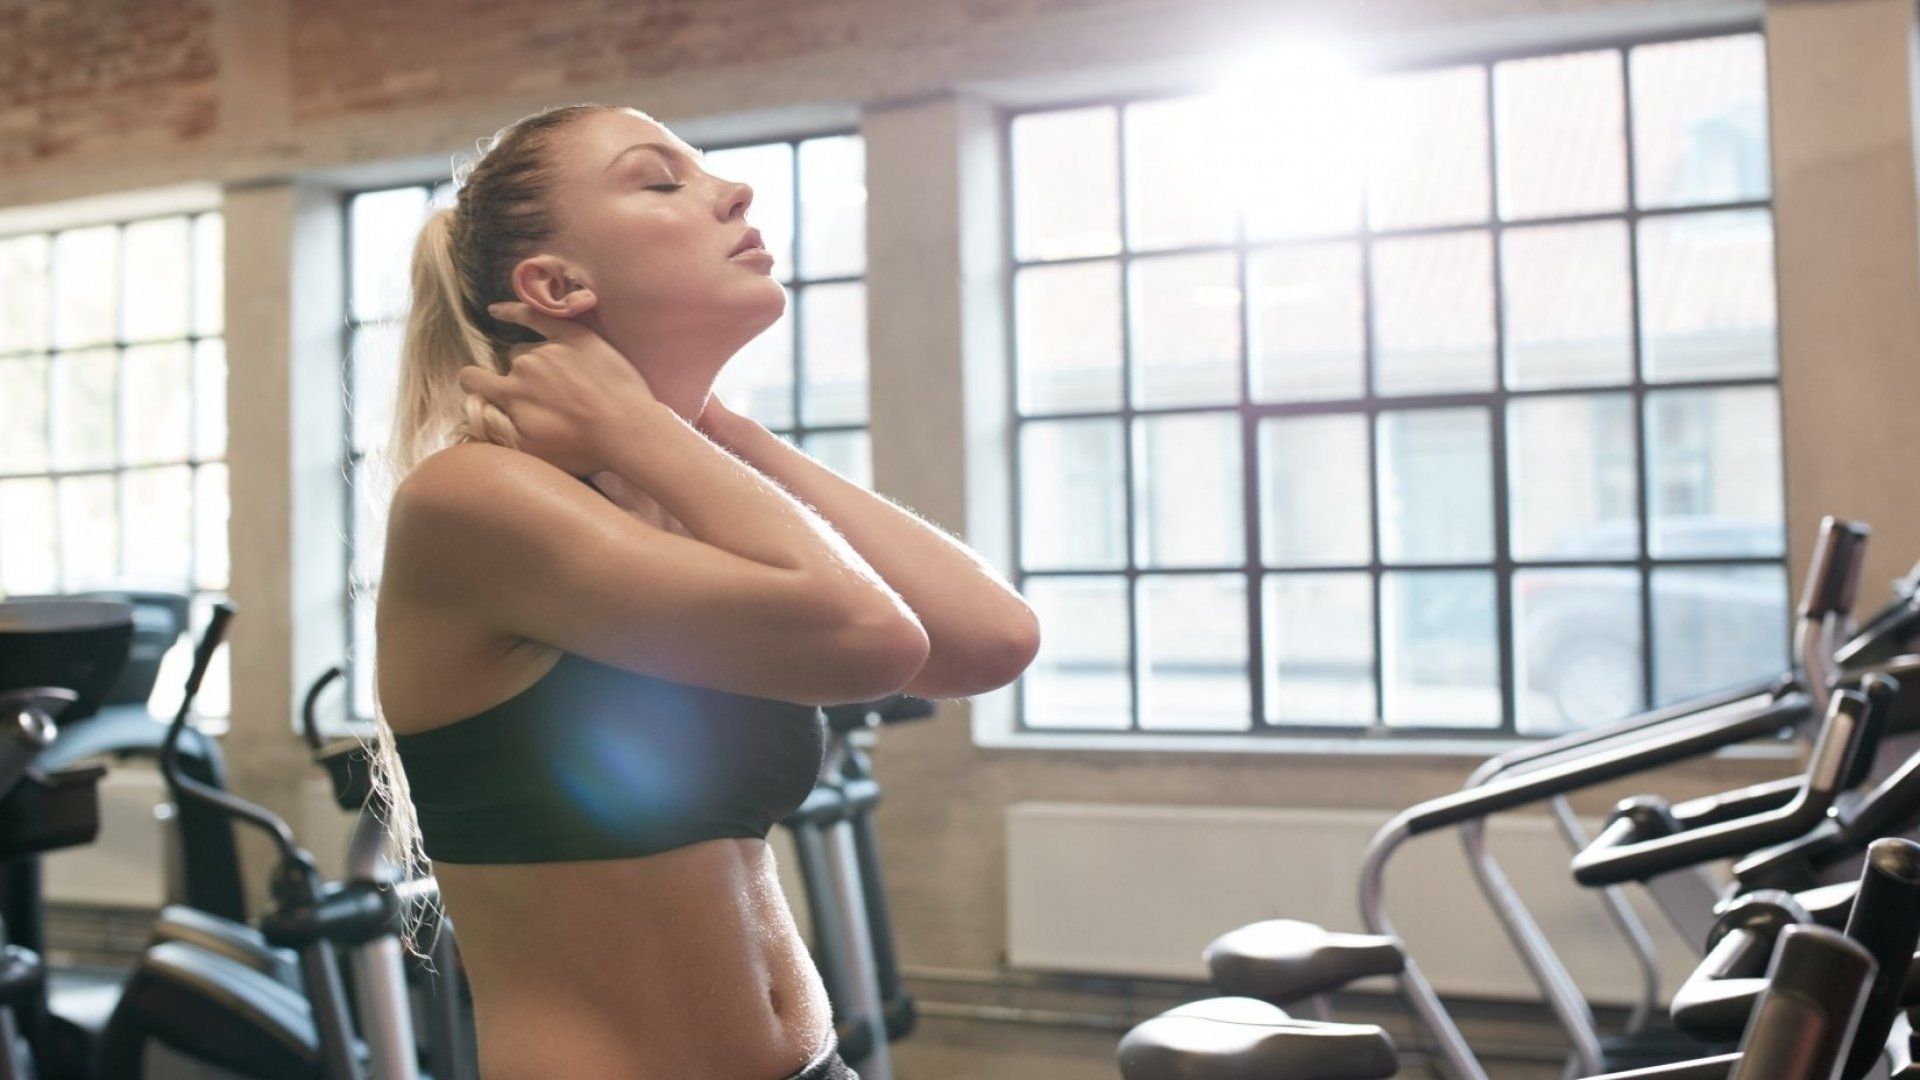 Sick Of The Gym? Science Says This 40-Second Workout Could Make You Fitter Than Manic Classes